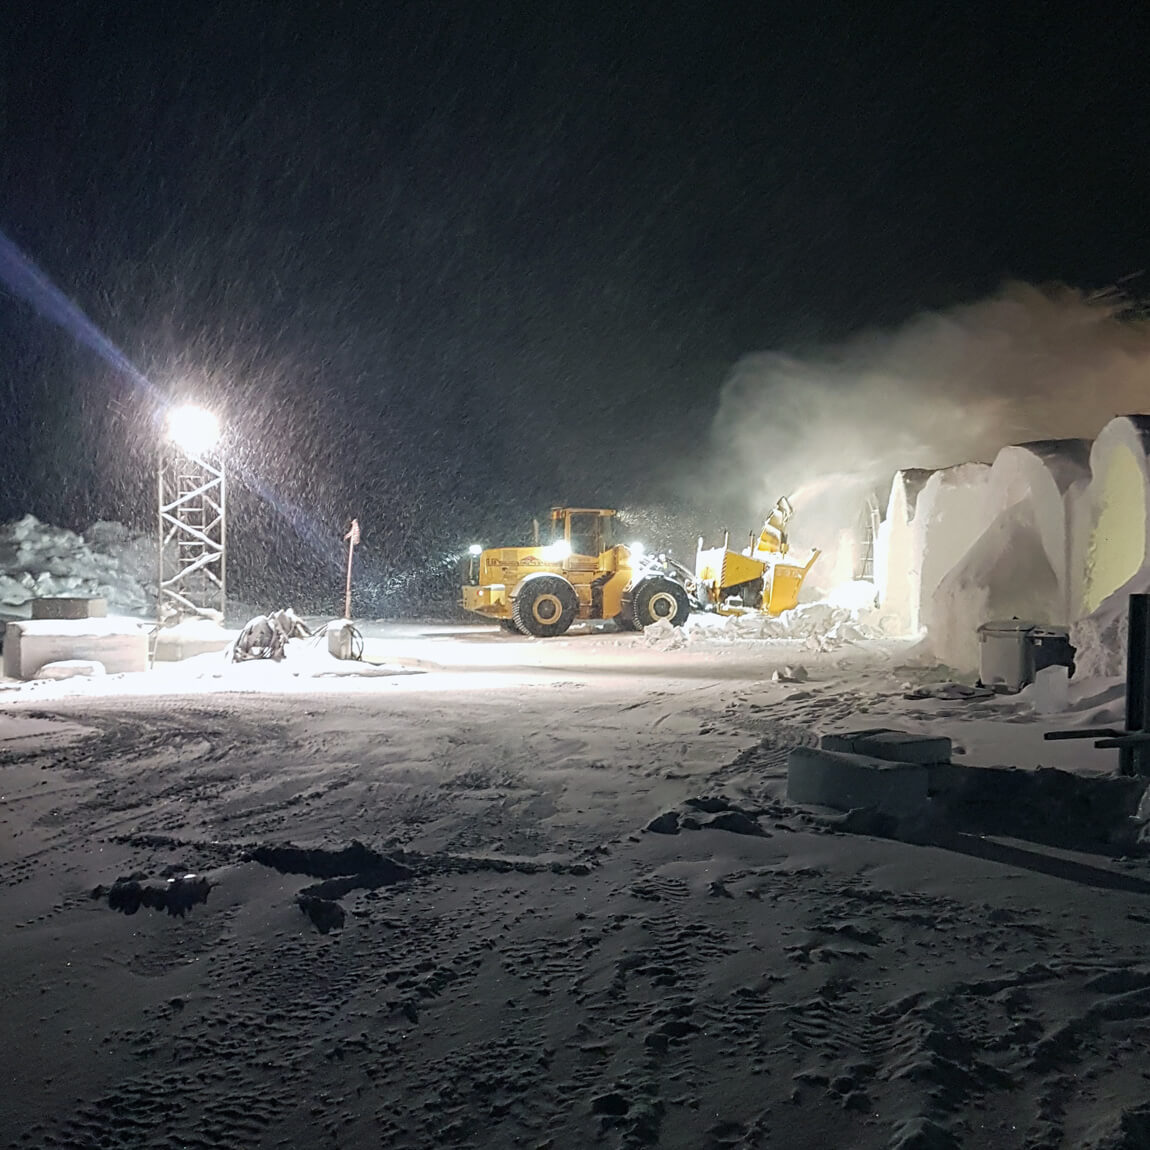 Three more hotel rooms are constructed at the ICEHOTEL, spraying icy snow